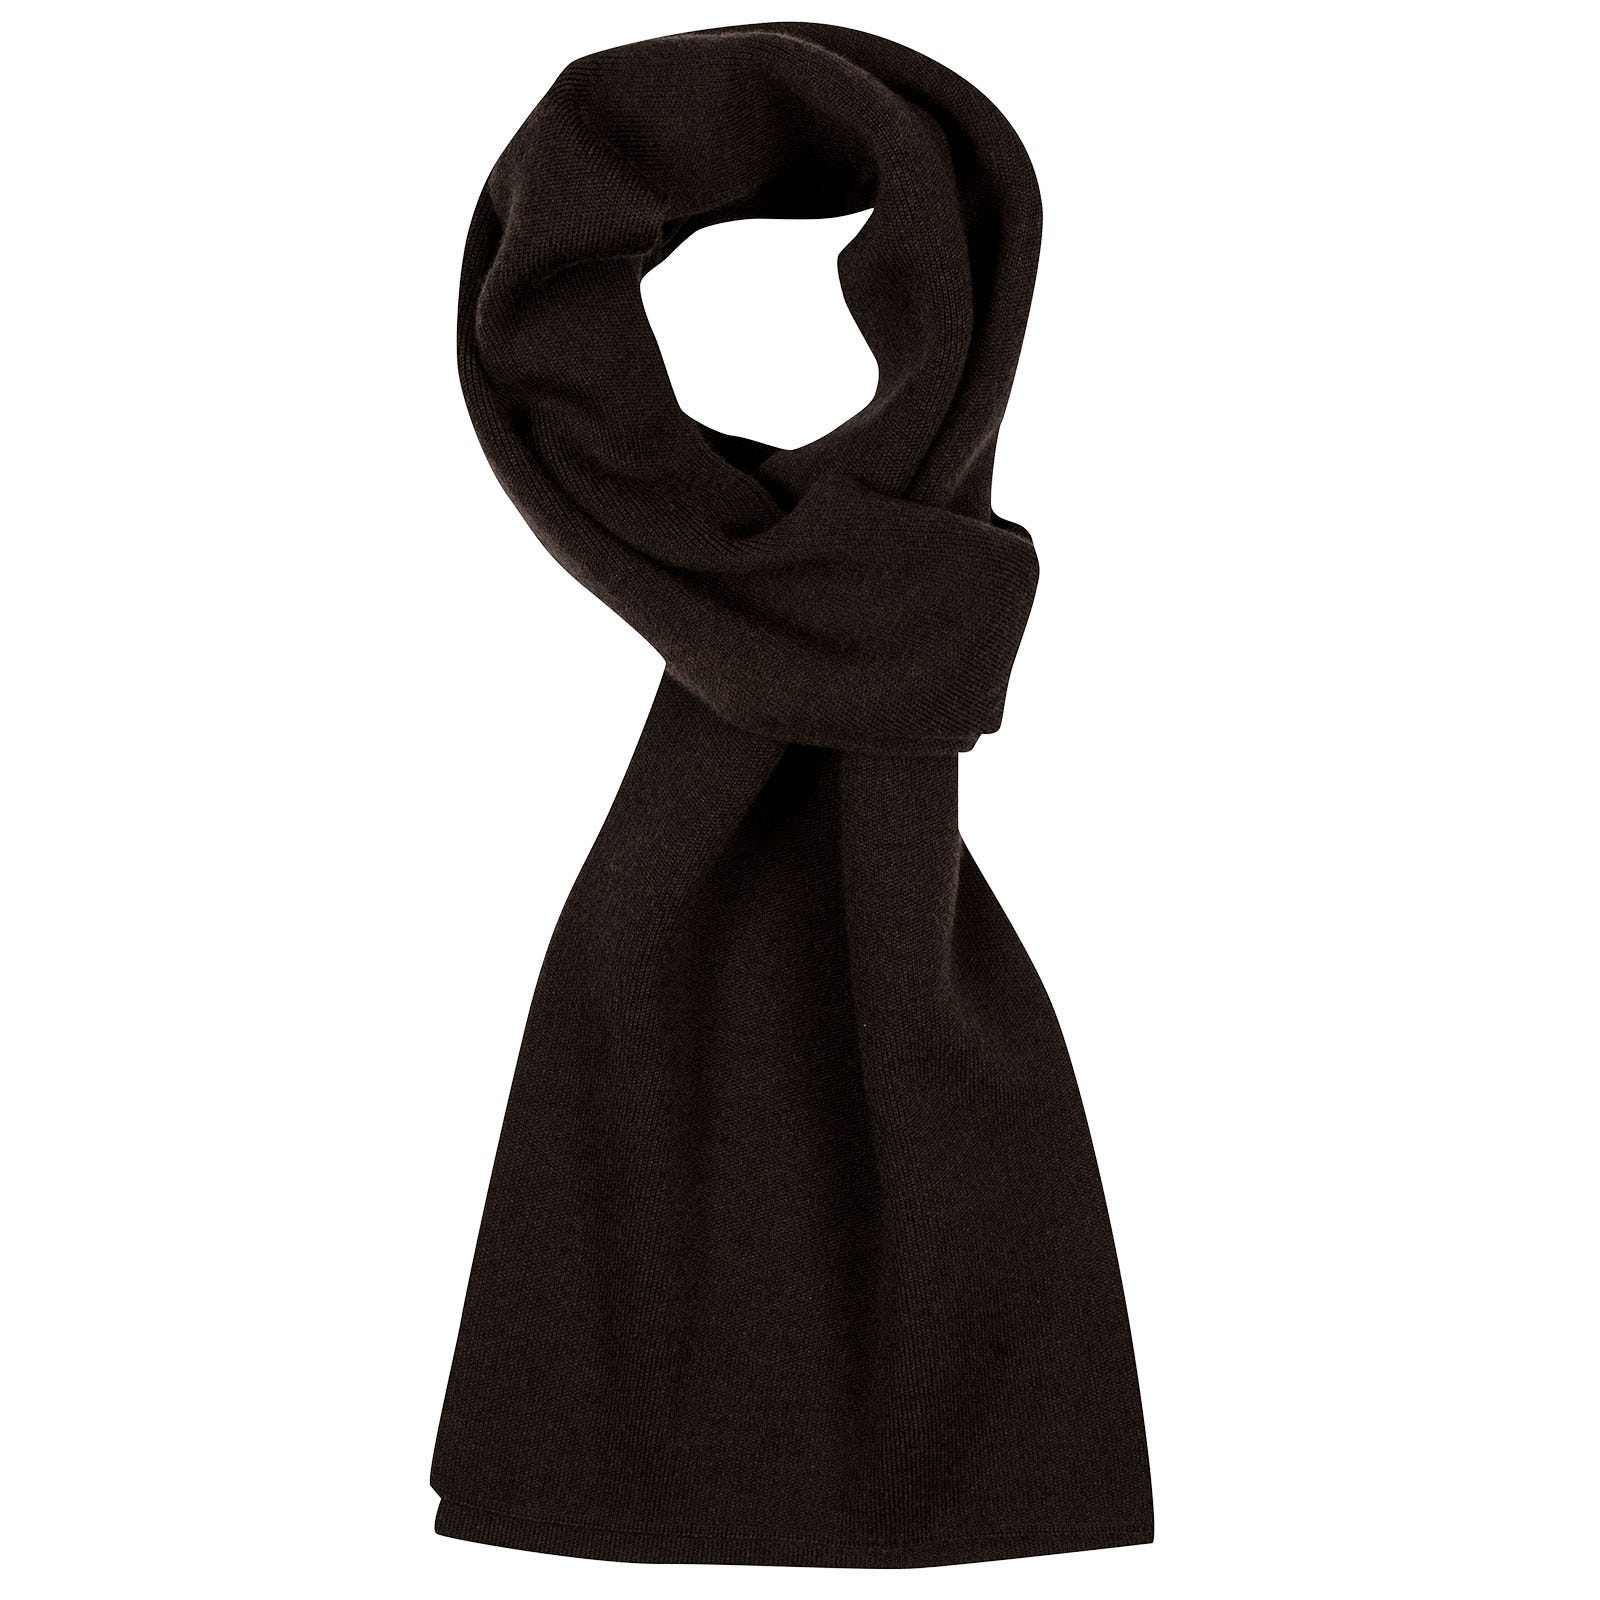 John Smedley pintail Merino Wool Scarf in Chestnut-ONE